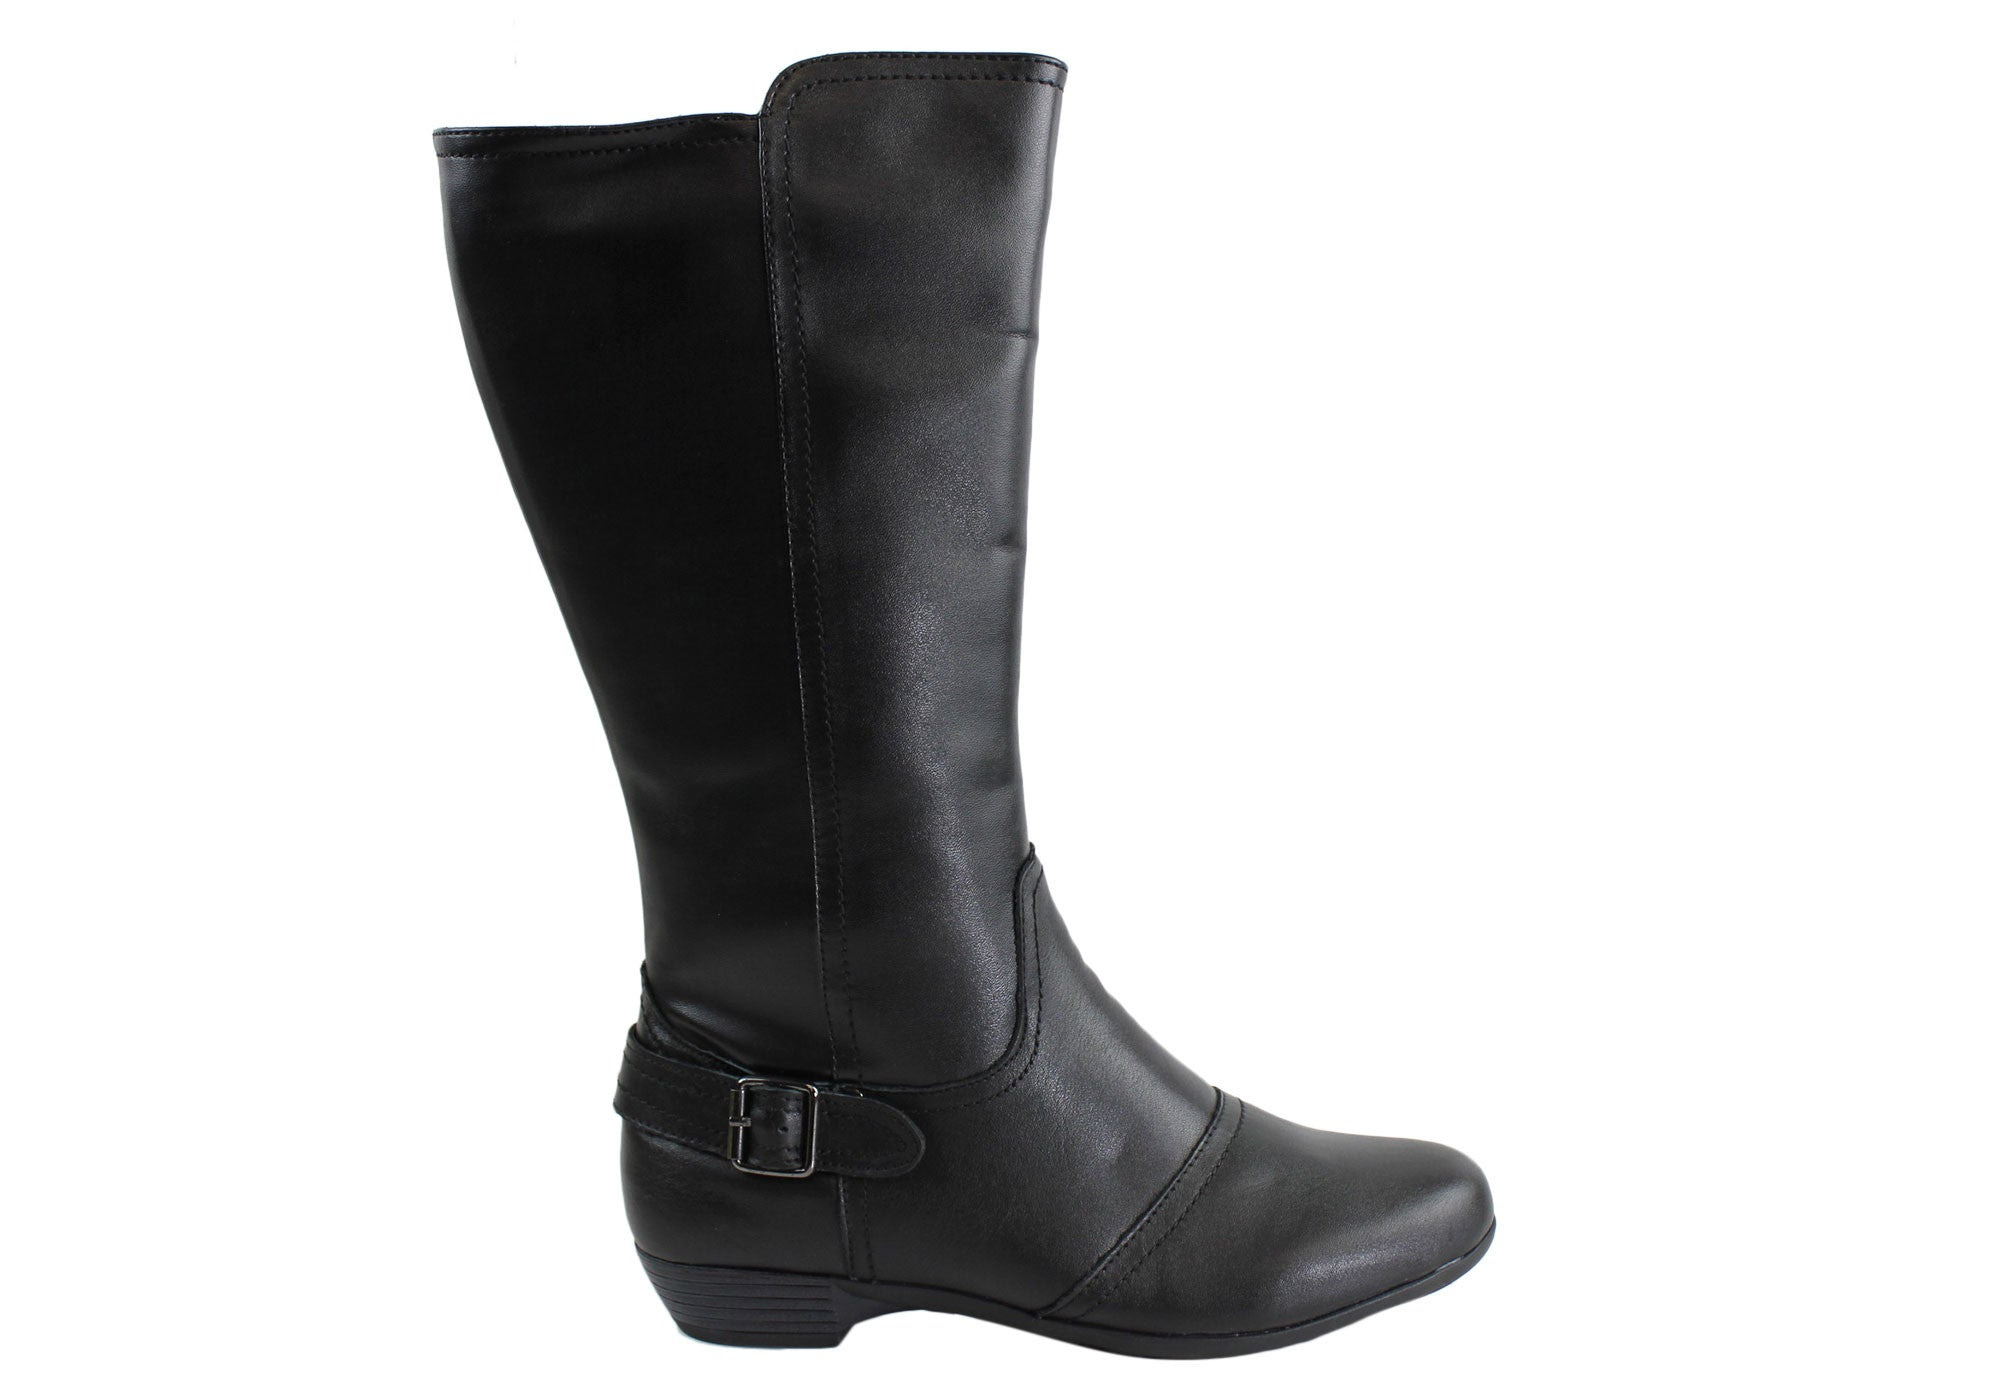 ad5891d29 Cushion Comfort Anouk Womens Leather Comfortable Boots